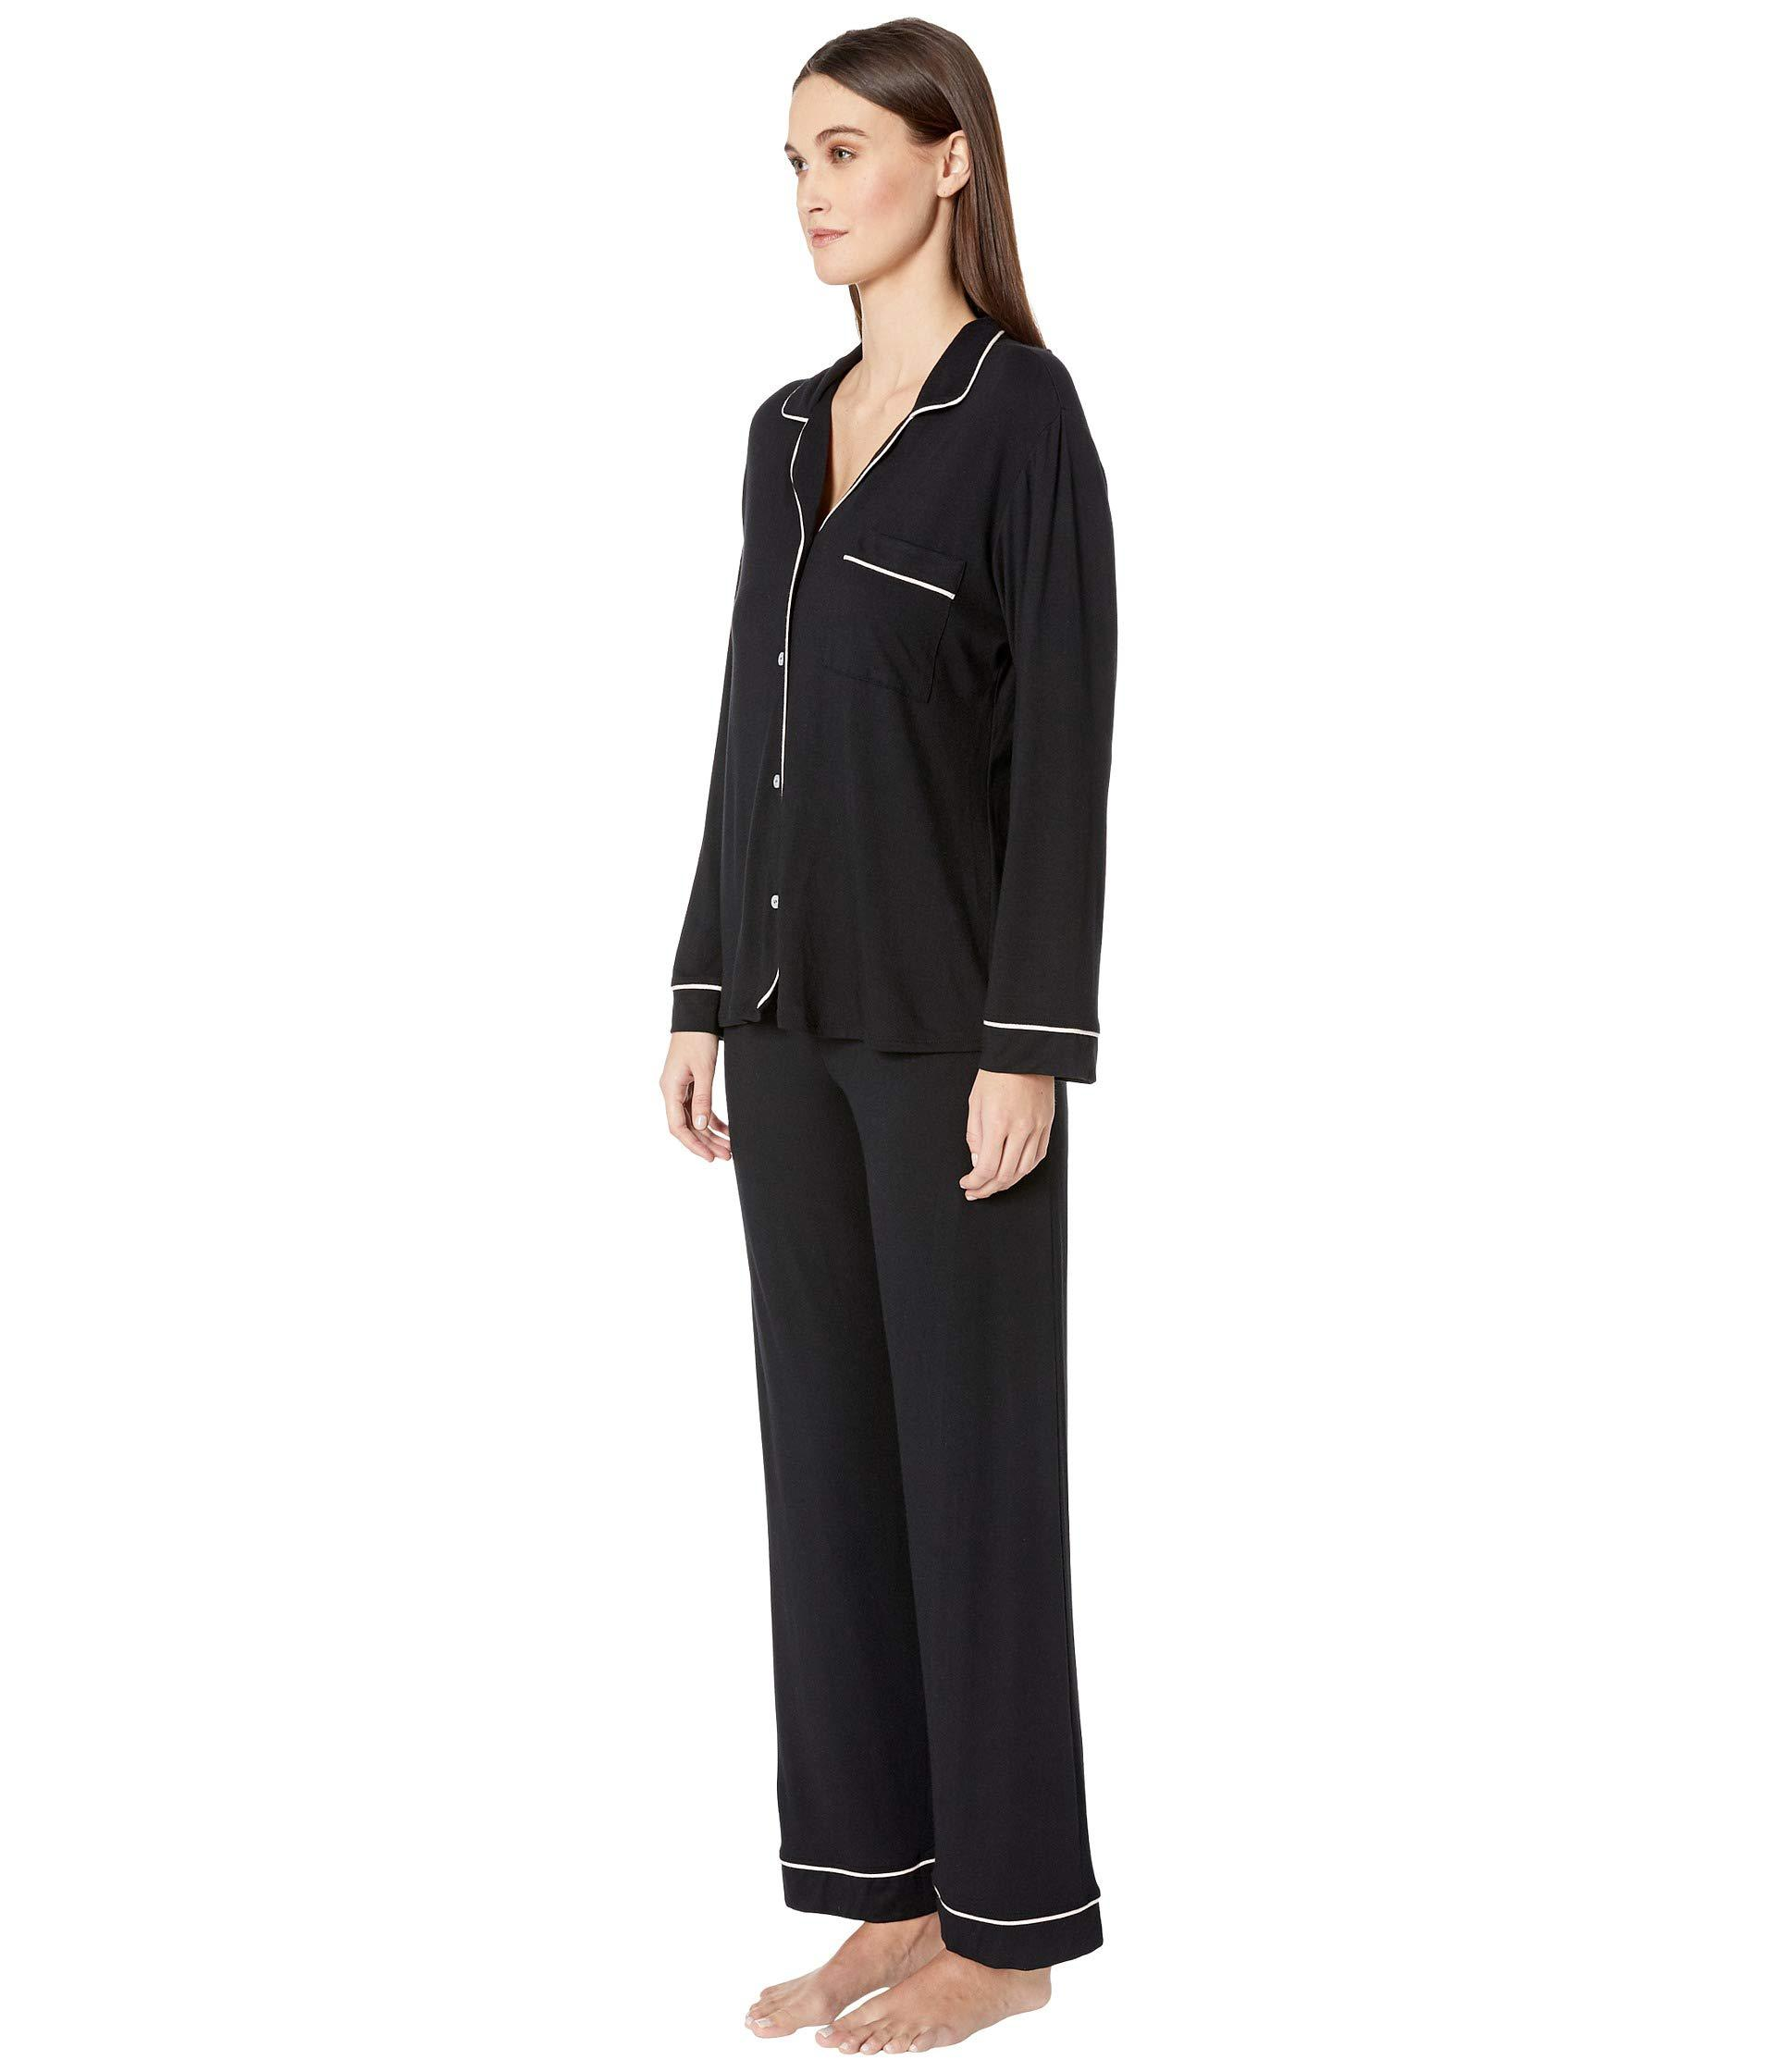 f87f66918 Lyst - Eberjey Gisele - Pj Set (water Blue) Women s Pajama Sets in Black